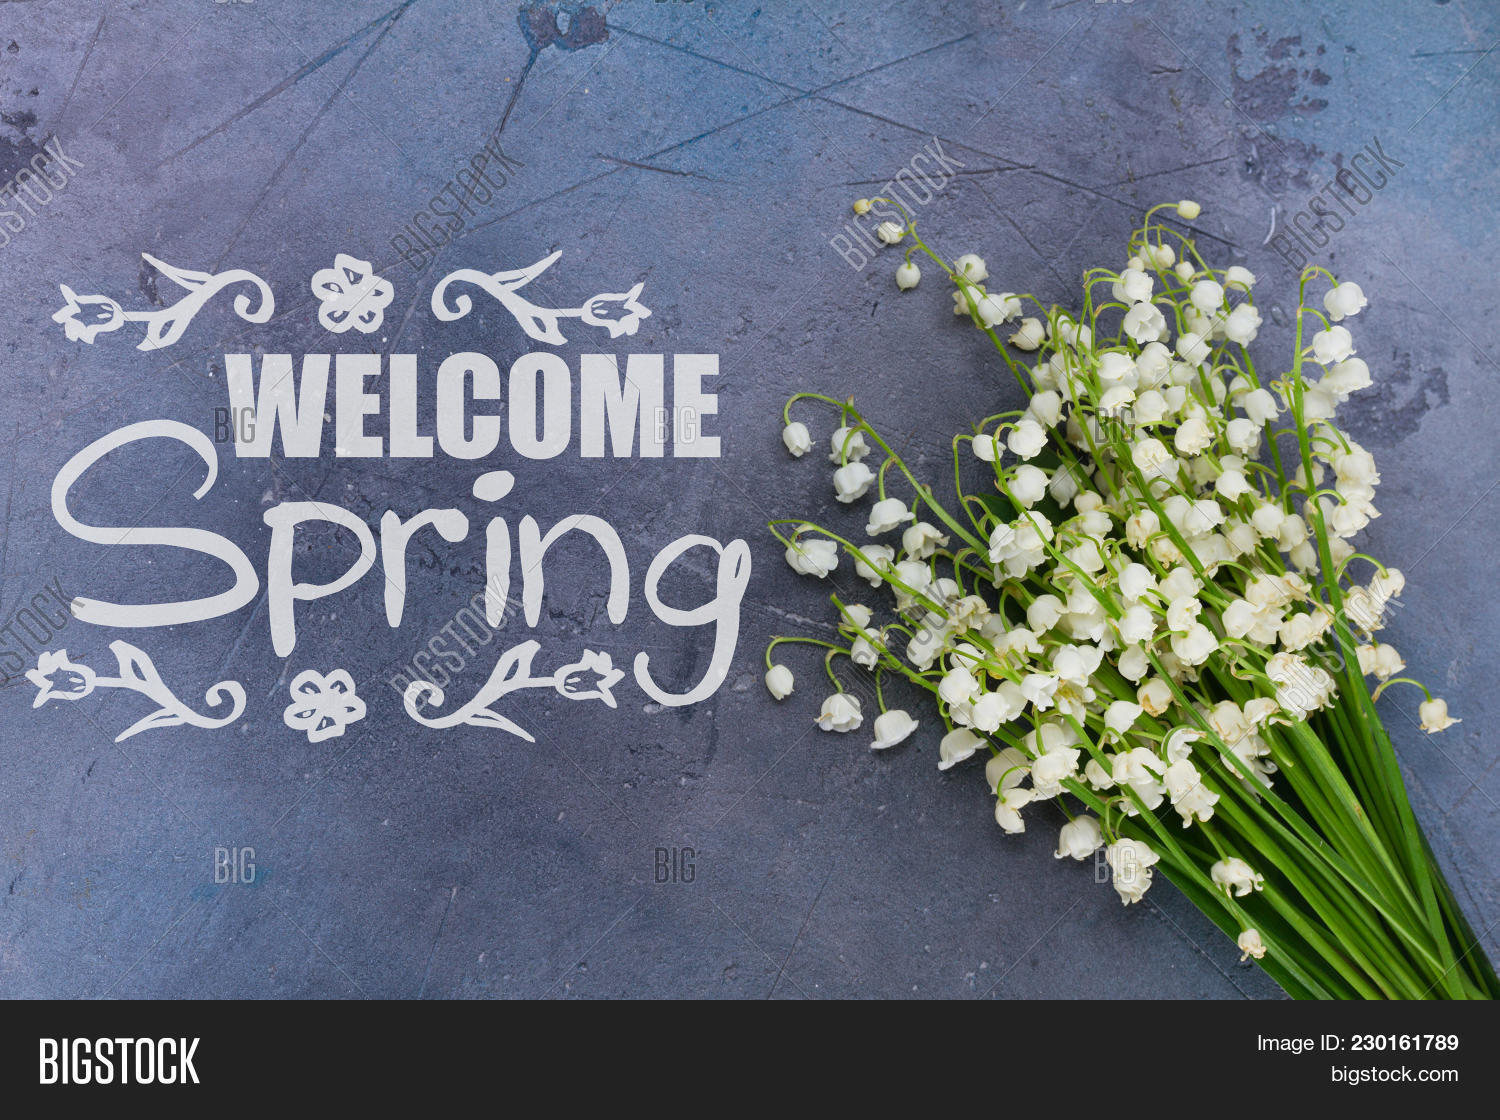 Lilly valley flowers image photo free trial bigstock lilly of the valley flowers on gray background with welcome spring slogan mightylinksfo